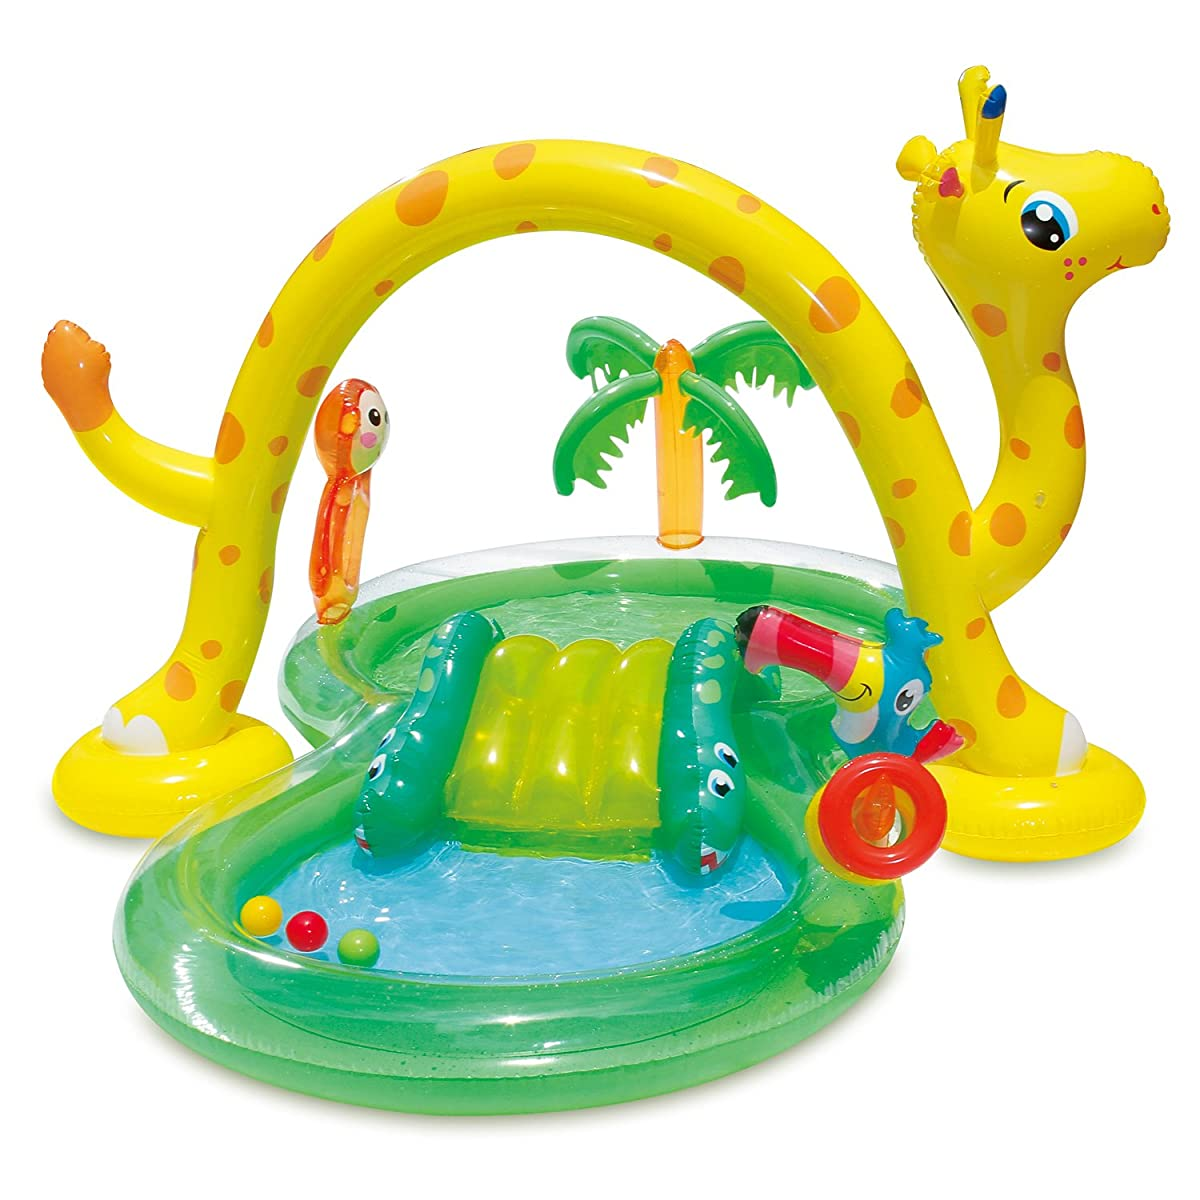 Summer Waves Inflatable Jungle Animal Kiddie Swimming Pool Play Center w/Slide